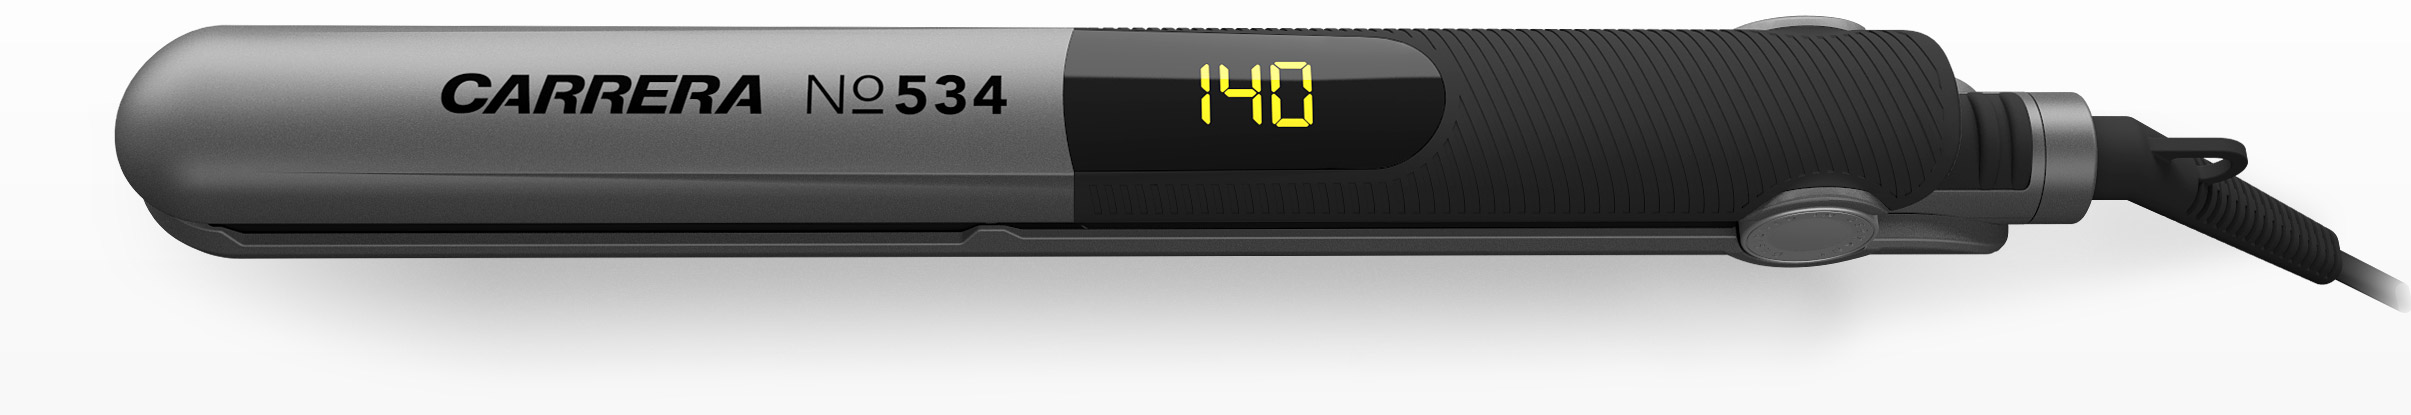 CARRERA №534 Ion Hair Straightener horizontal with temperatur display 140 degrees